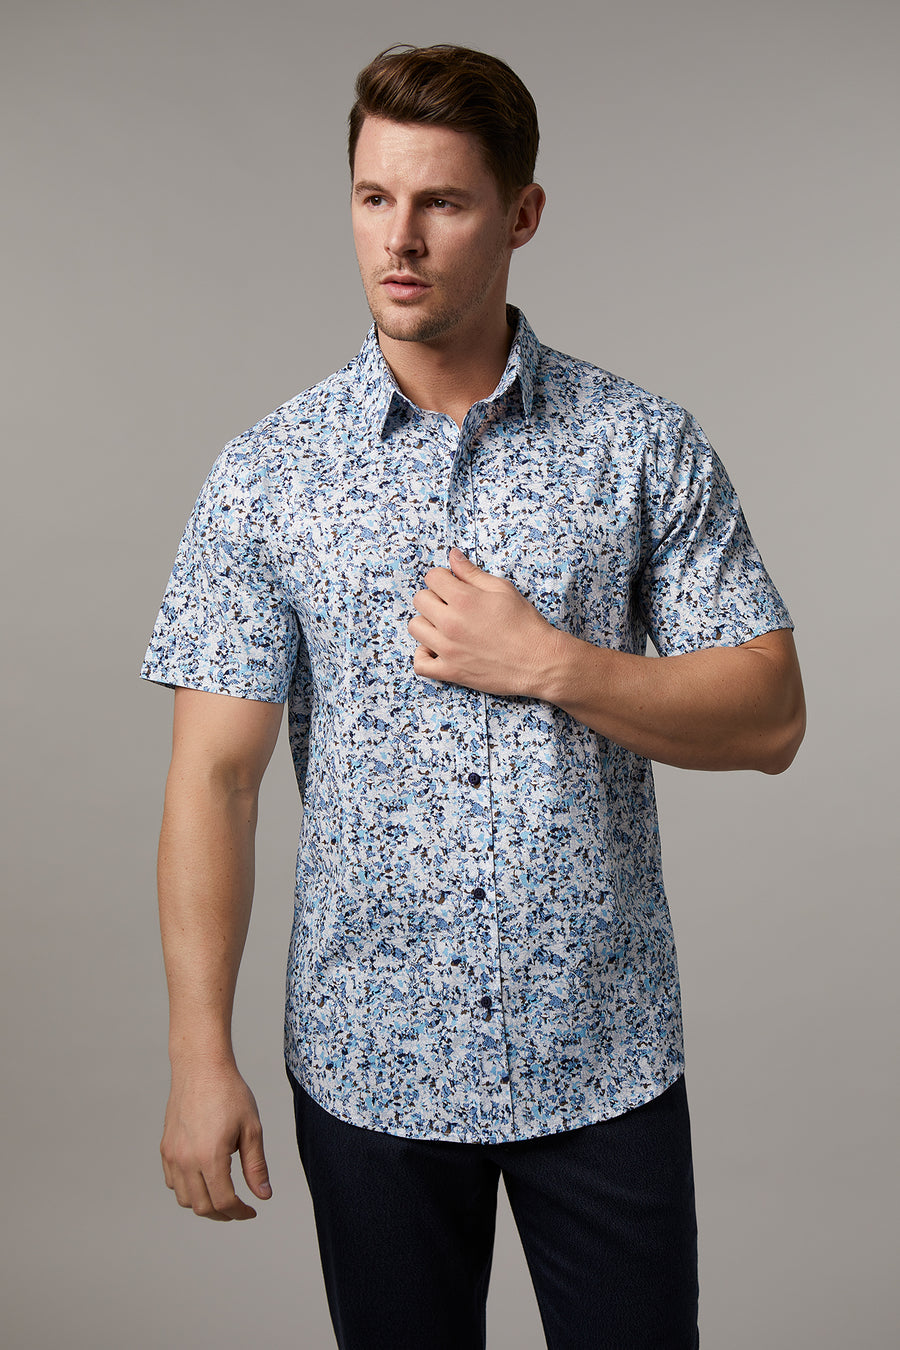 Andrew Cotton Stretch Absract Shirt